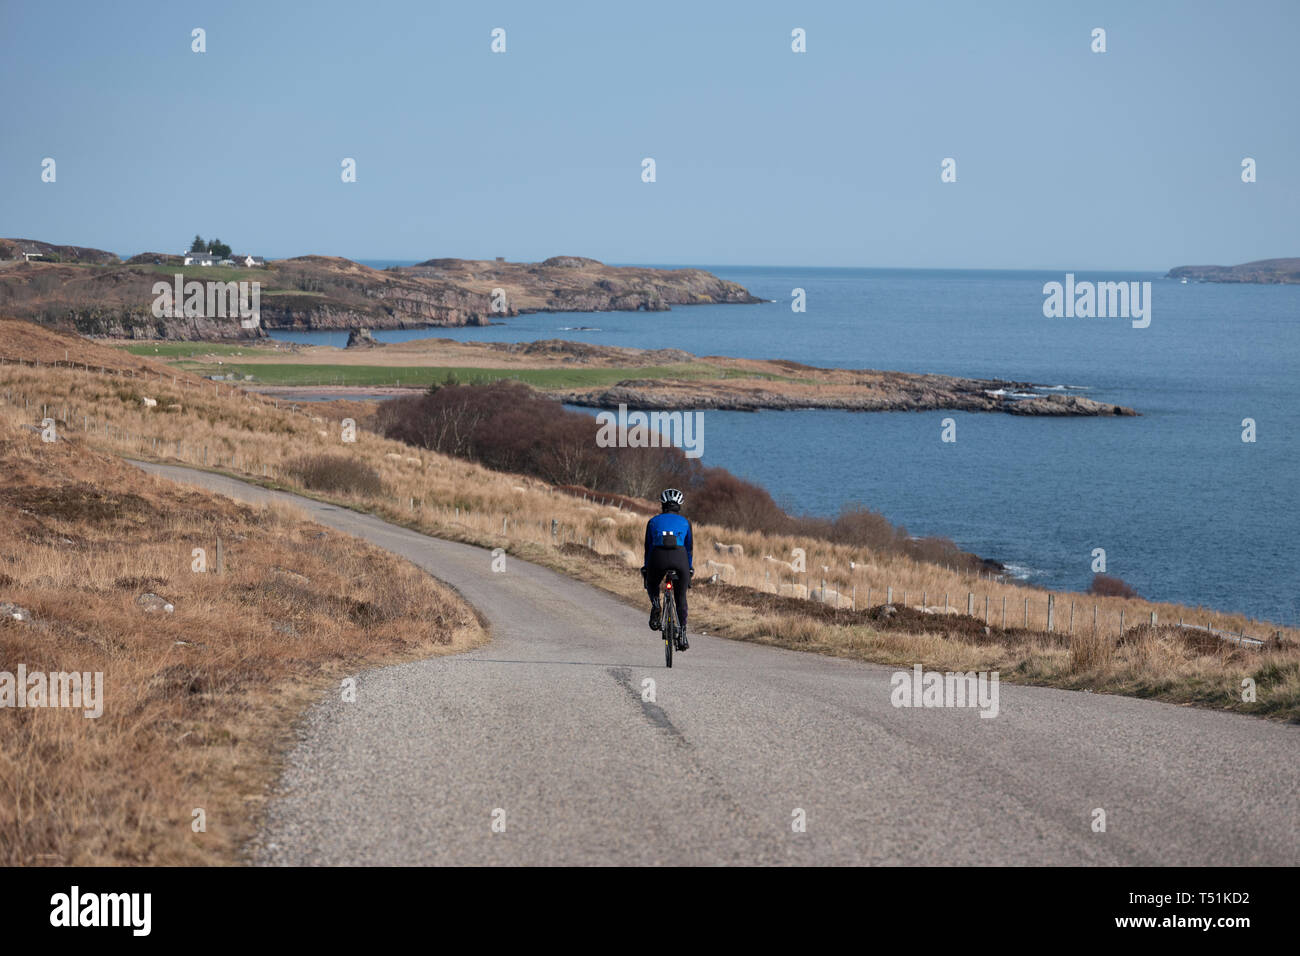 cycling from Poolewe to Cove along the shore of Loch Ewe, west coast of Scotland. Stock Photo